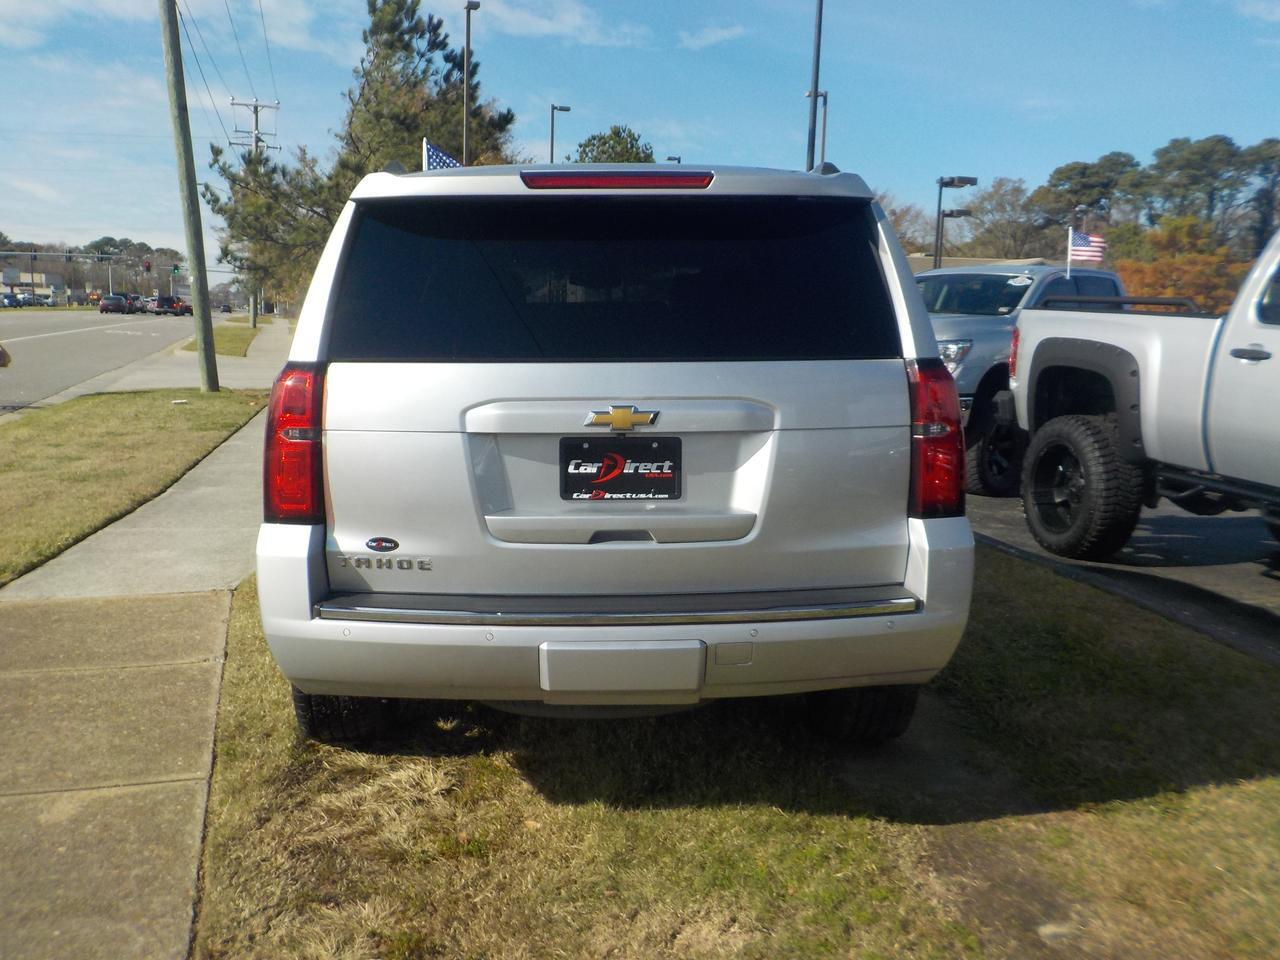 2015 CHEVROLET TAHOE LTZ 4X4, LEATHER, NAVI, DVD, BOSE SOUND SYSTEM, HEATED & COOLED SEATS, SUNROOF, POWER LIFTGATE! Virginia Beach VA